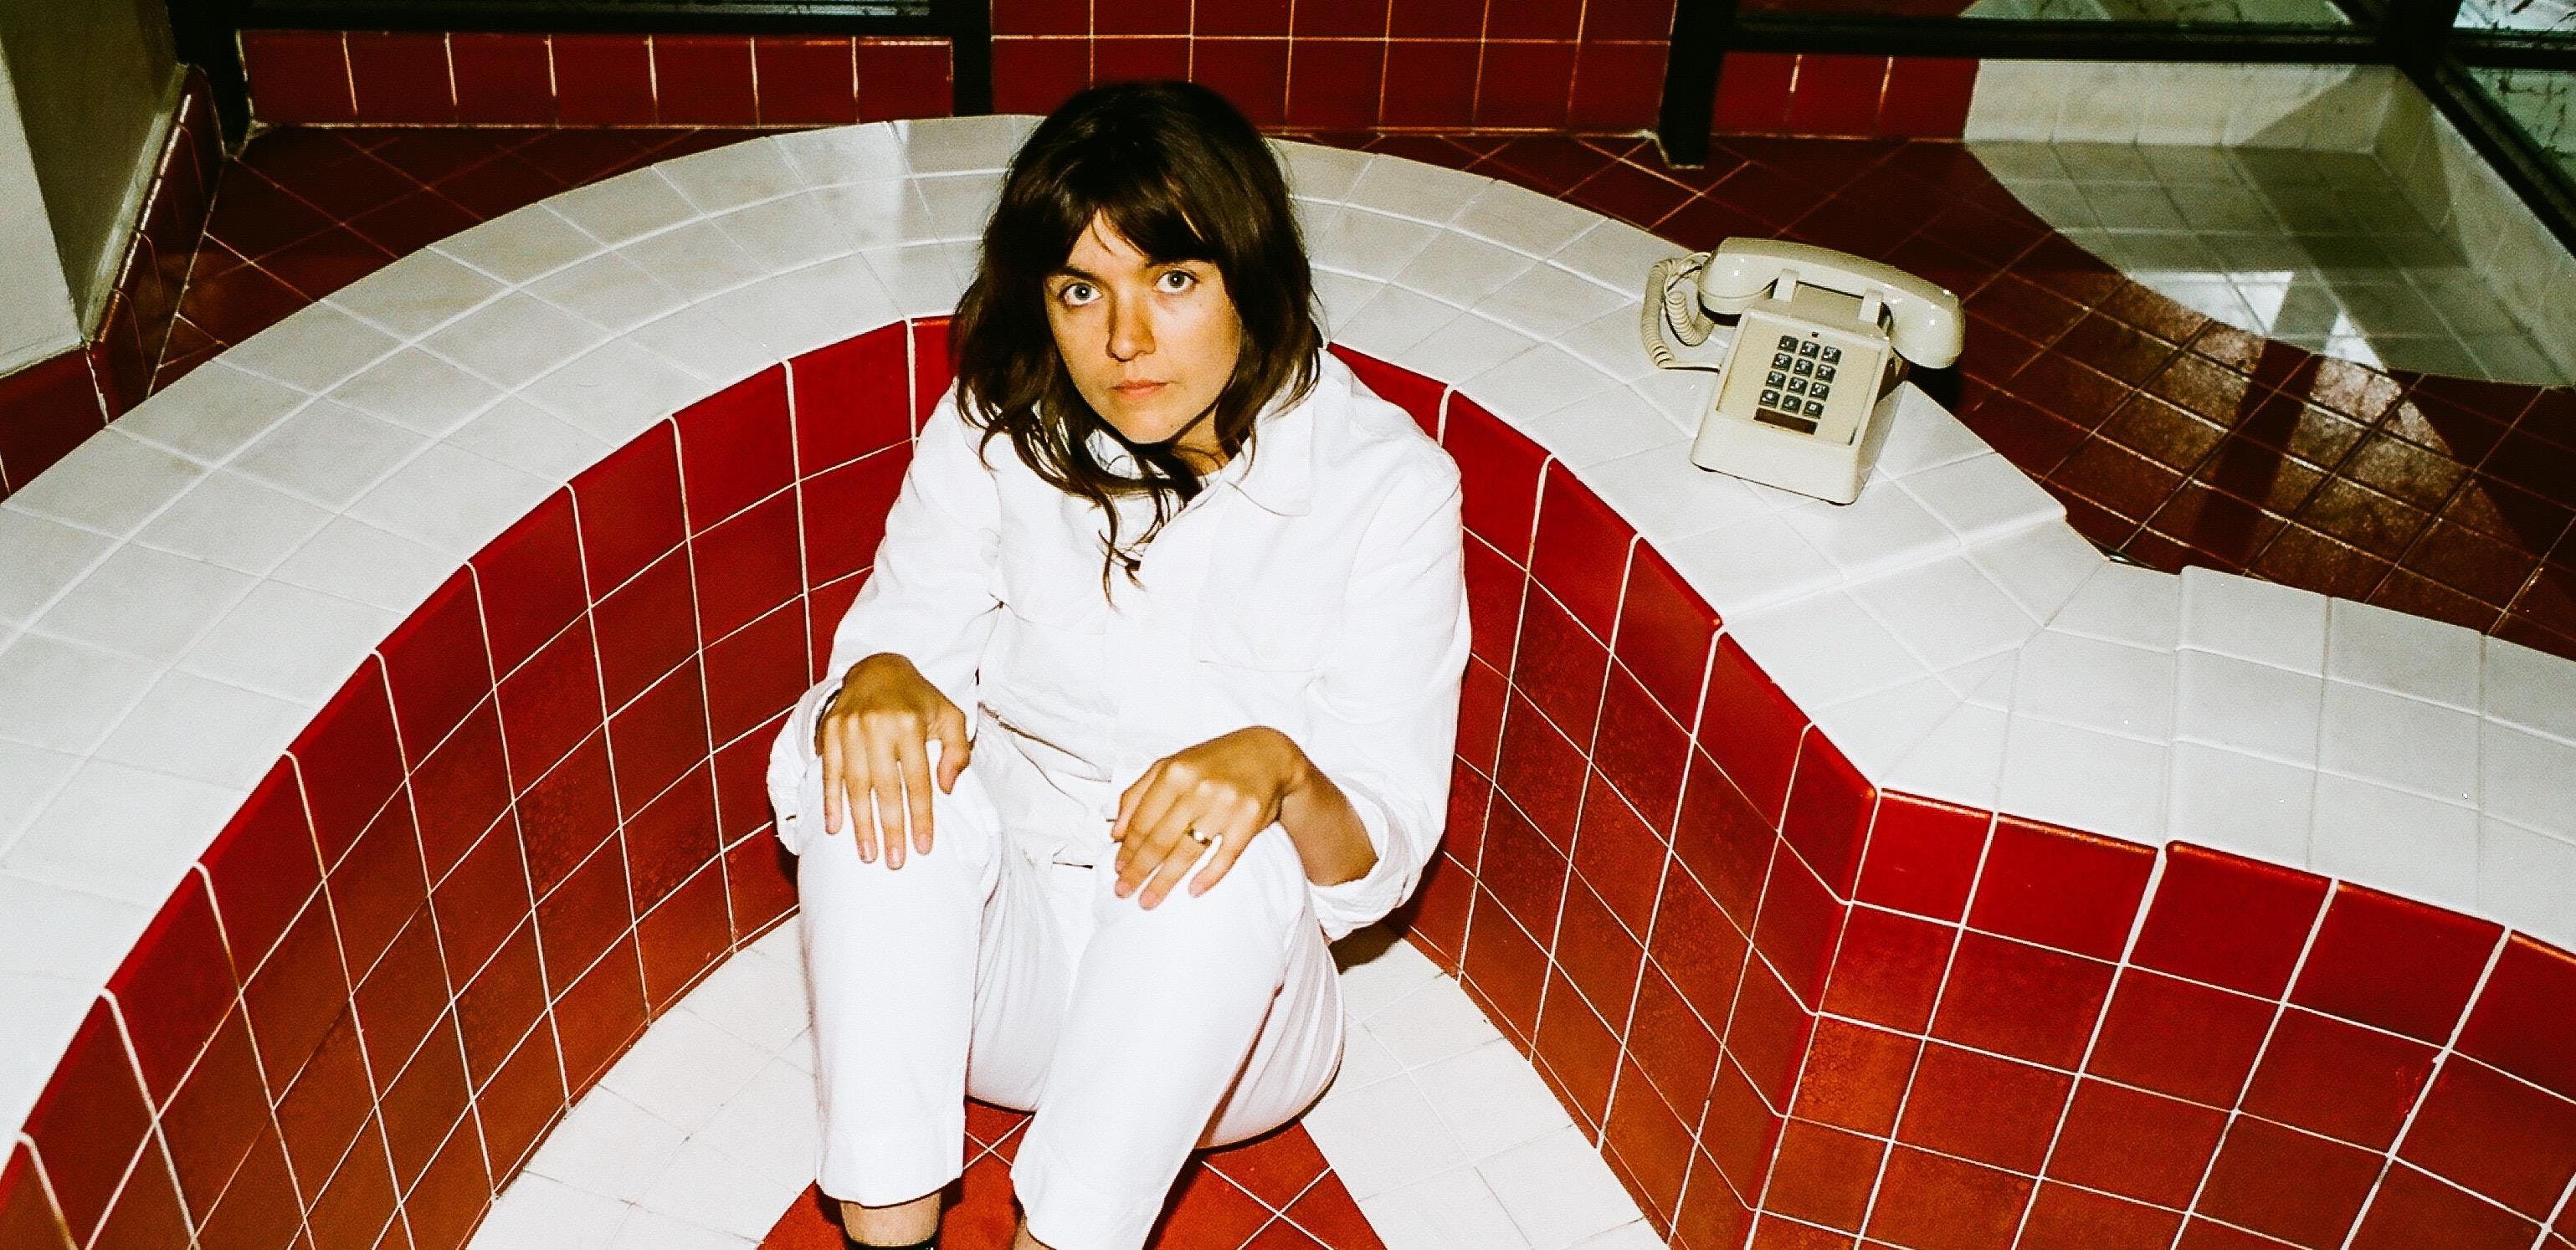 Courtney Barnett @ Preston Bradley Hall - Chi